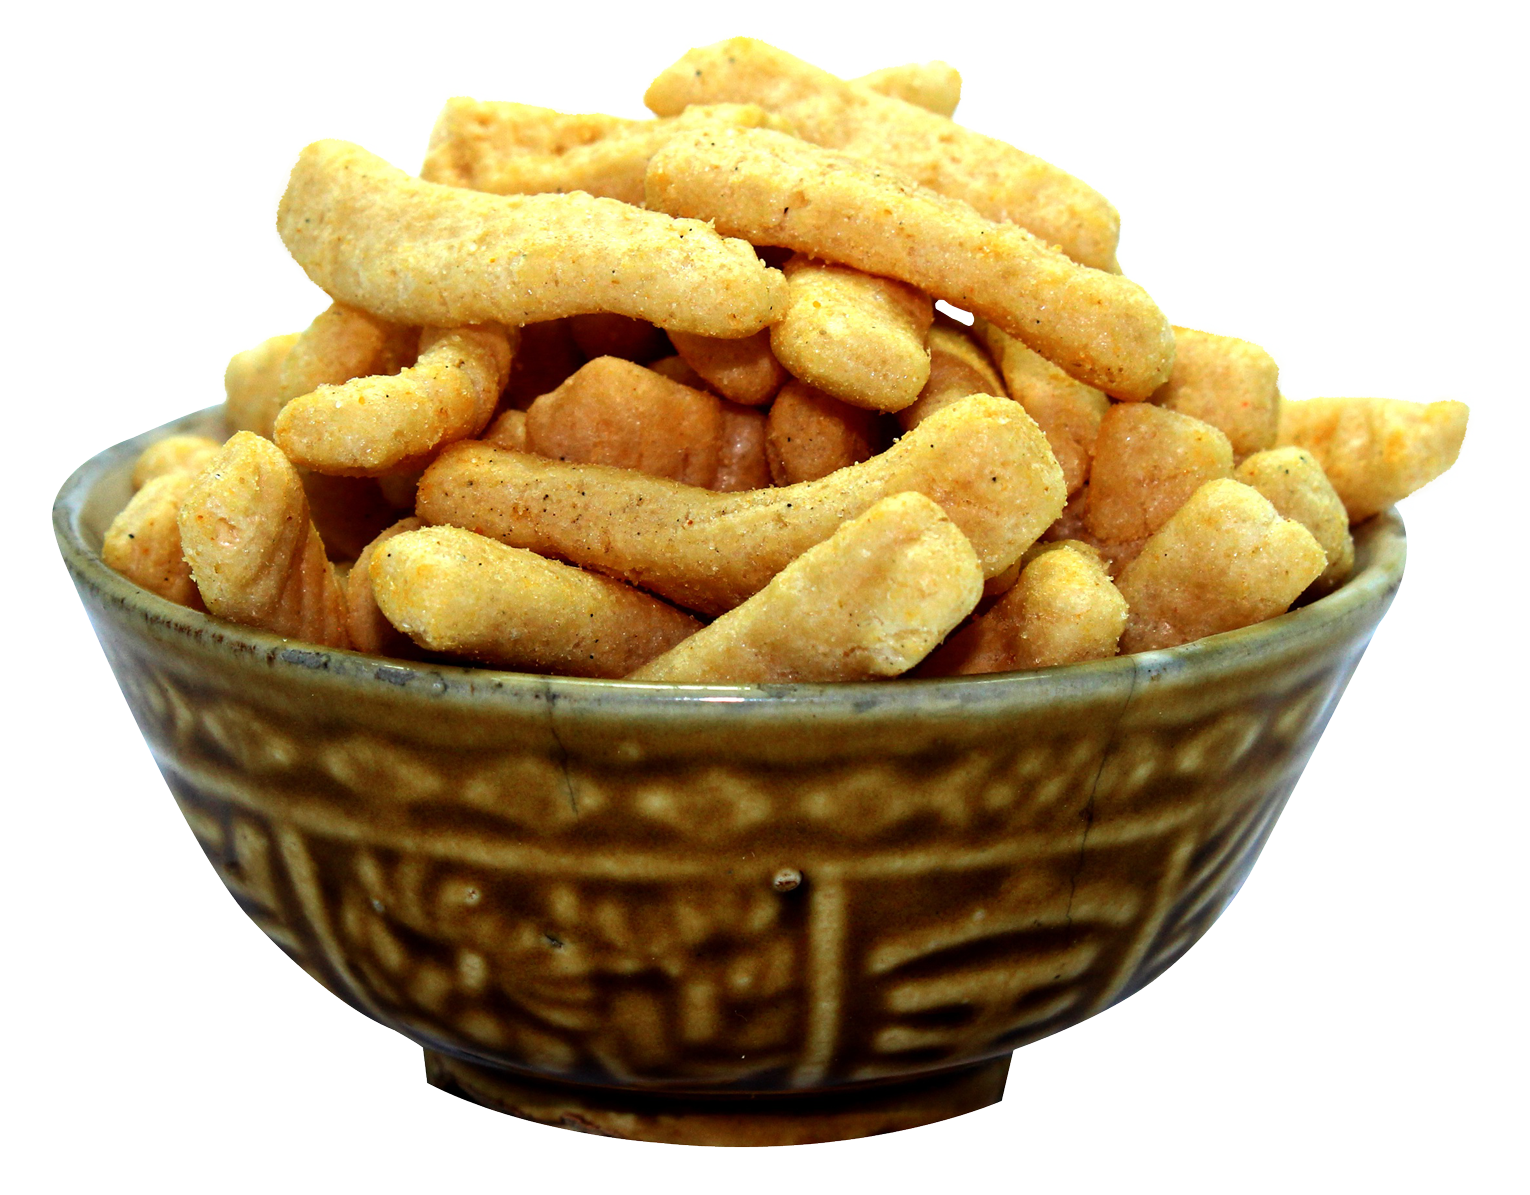 Snack Bowl PNG Image.